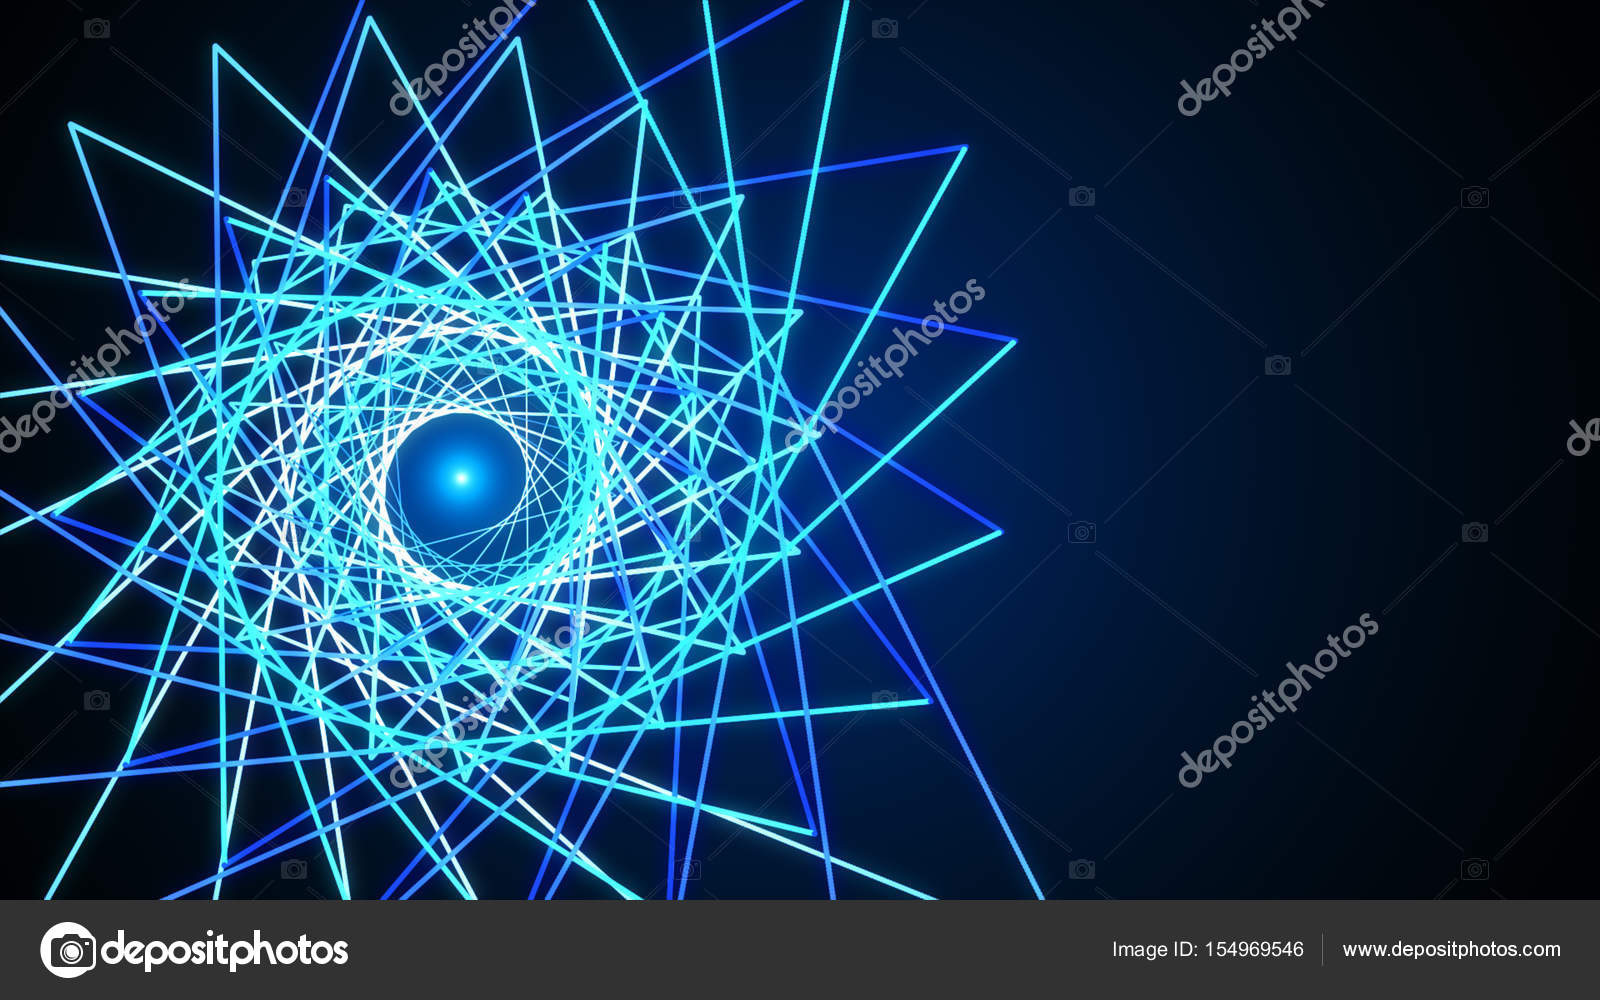 3d Line Design : D blue abstract mesh background with circles lines and shapes